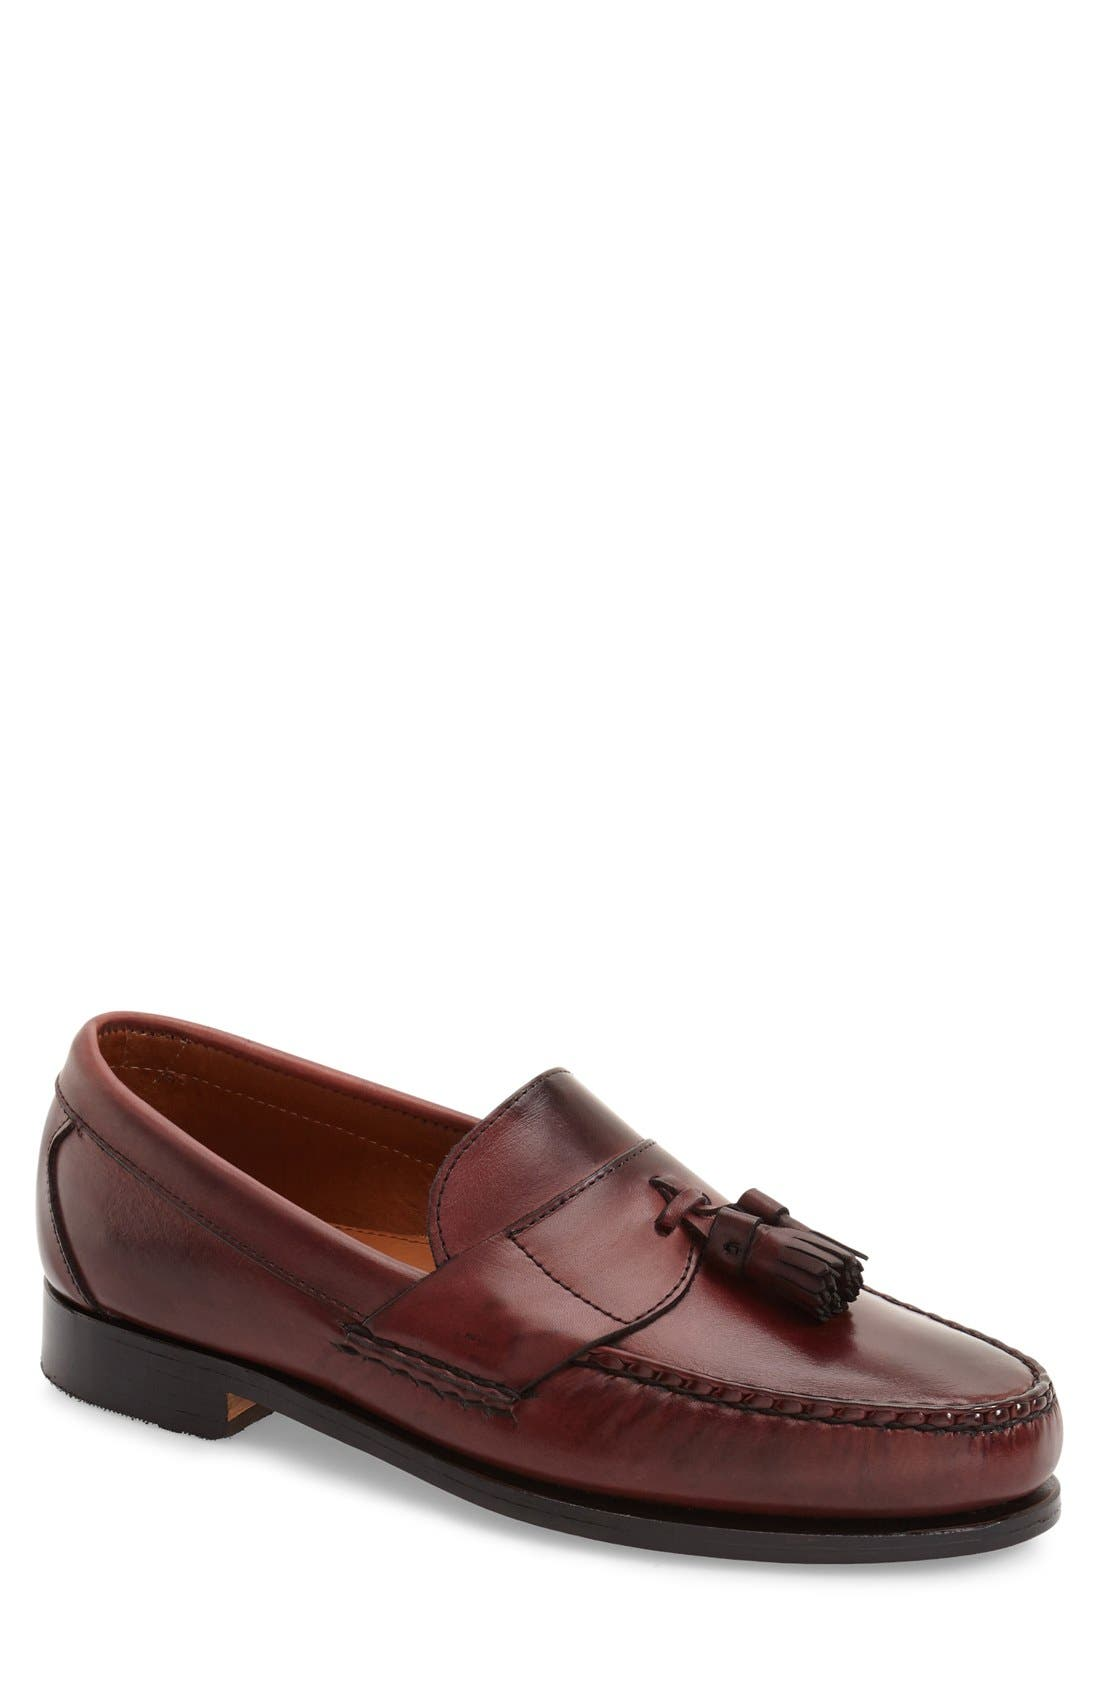 Allen Edmonds Tassel Penny Loafer (Men)